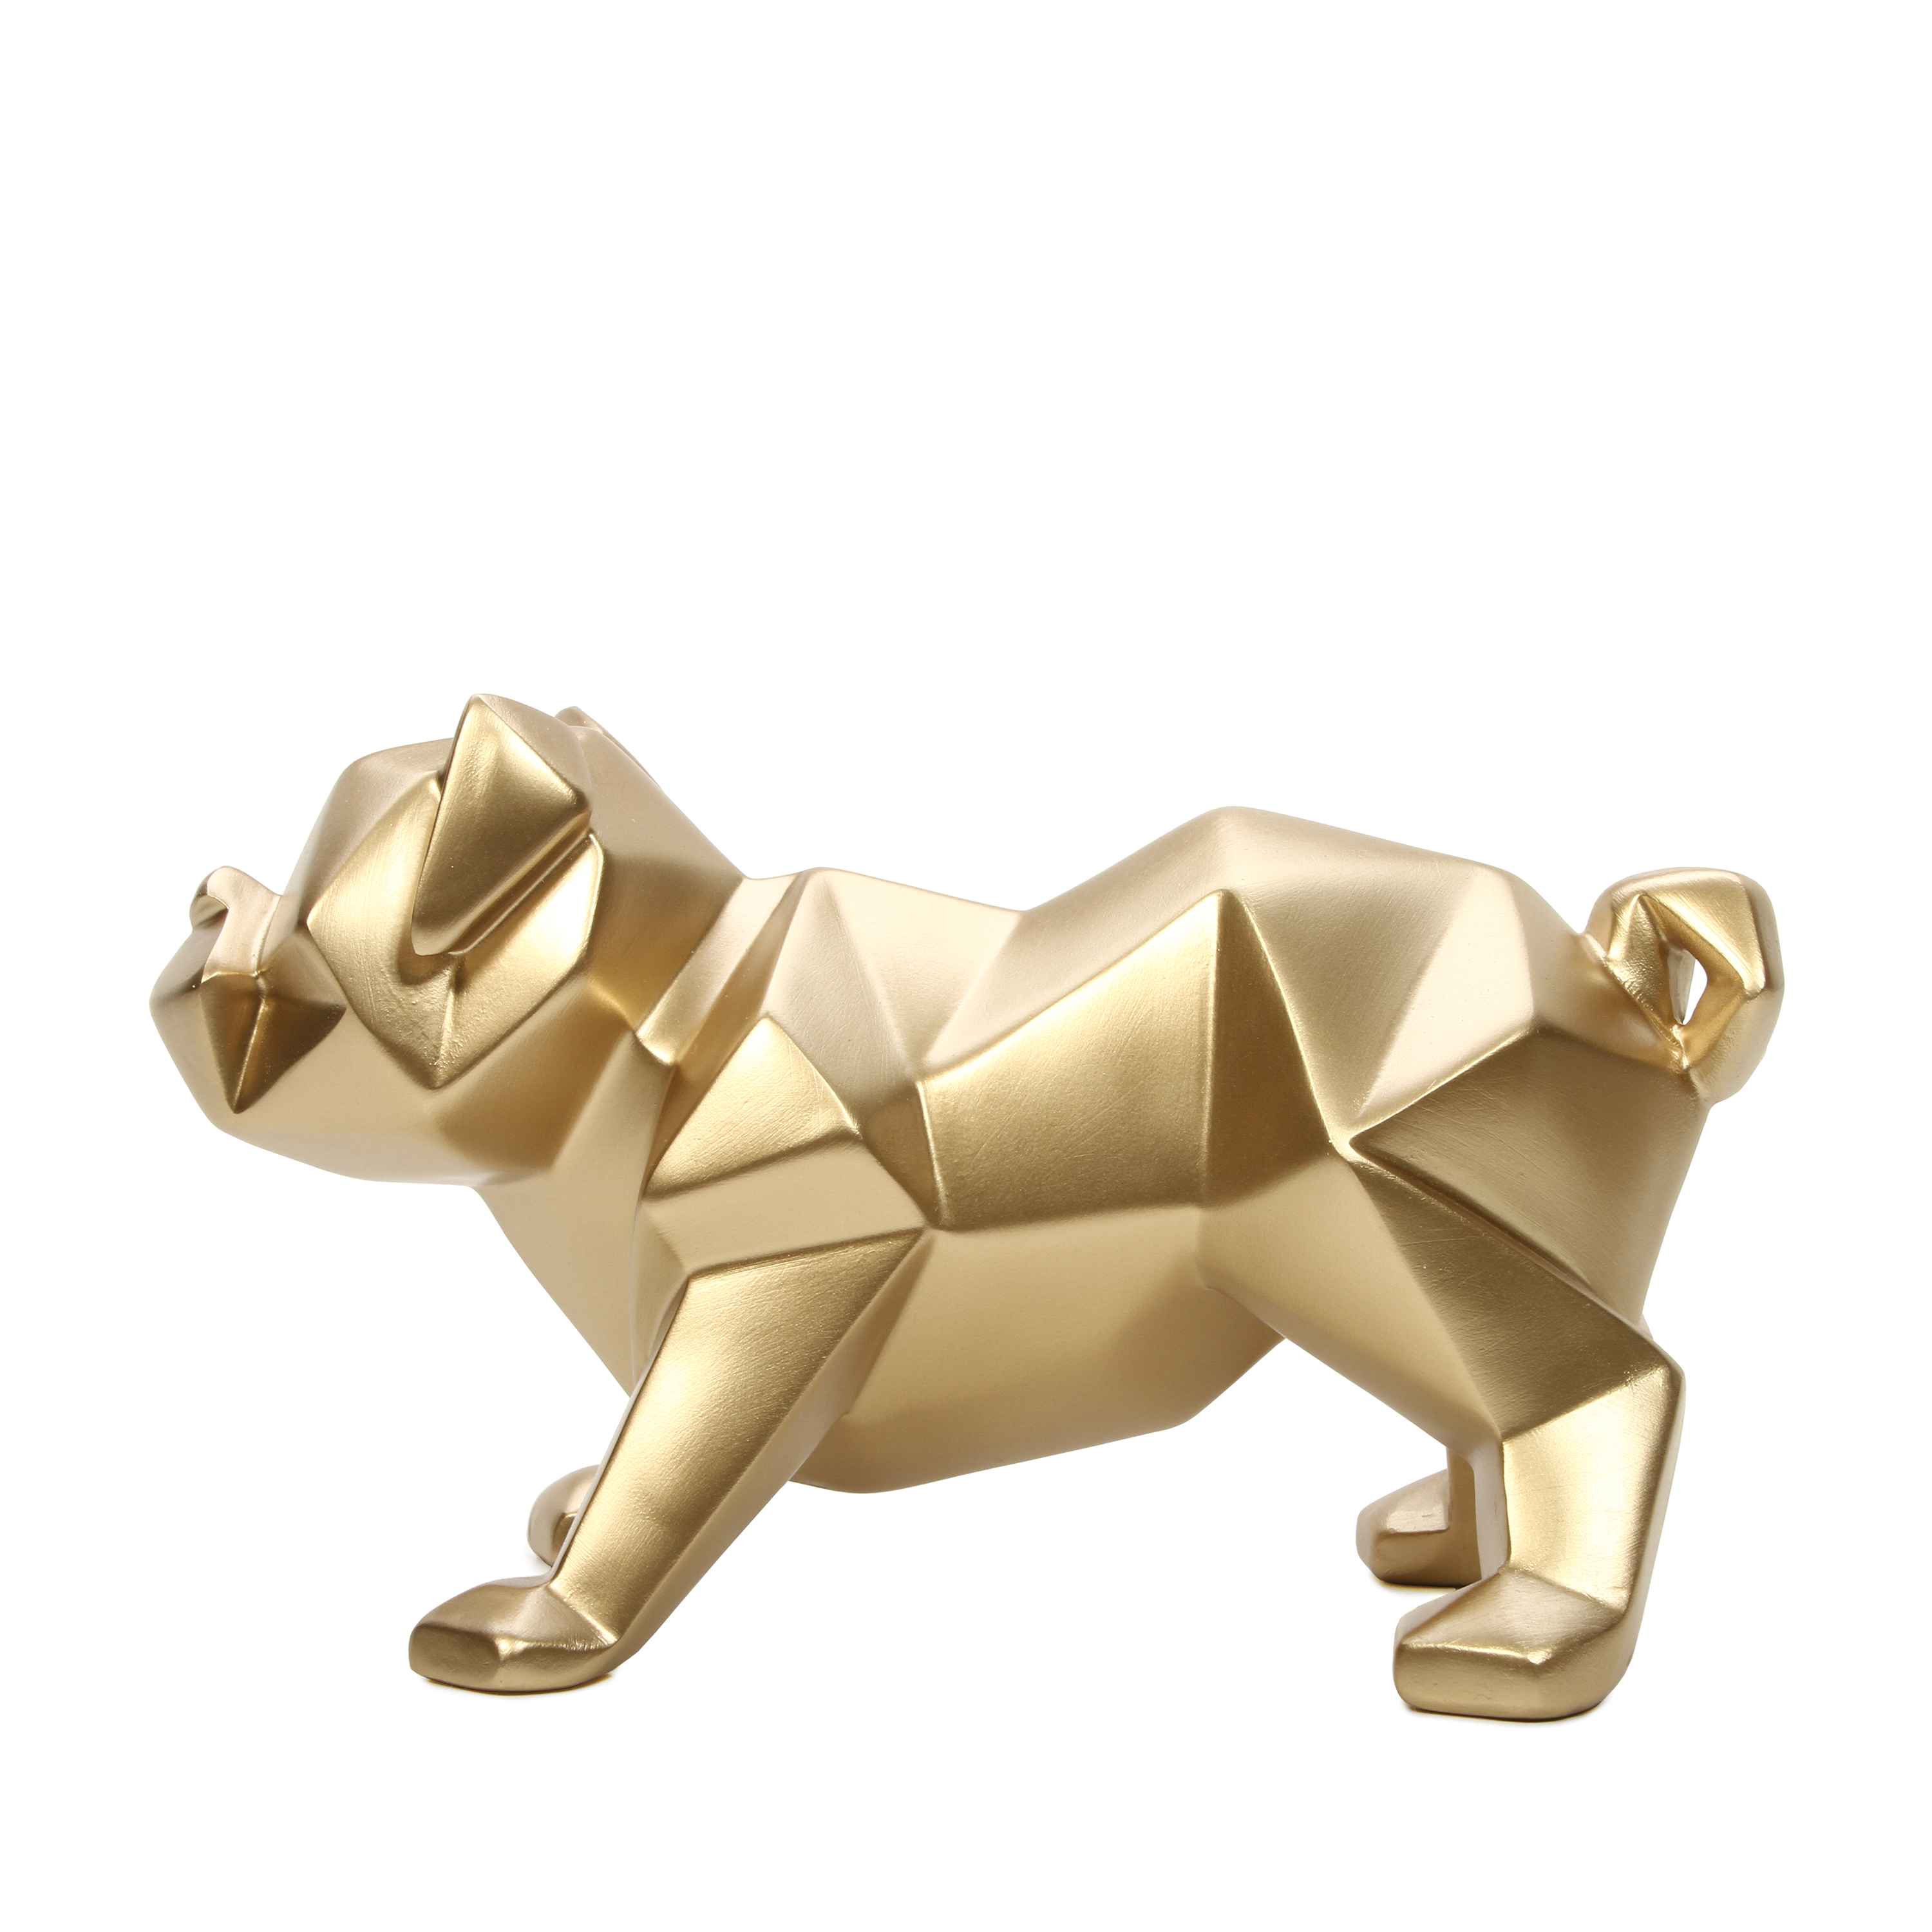 "Mainstays 5""High Tabletop Resin Geometric Dog Gold Finish"